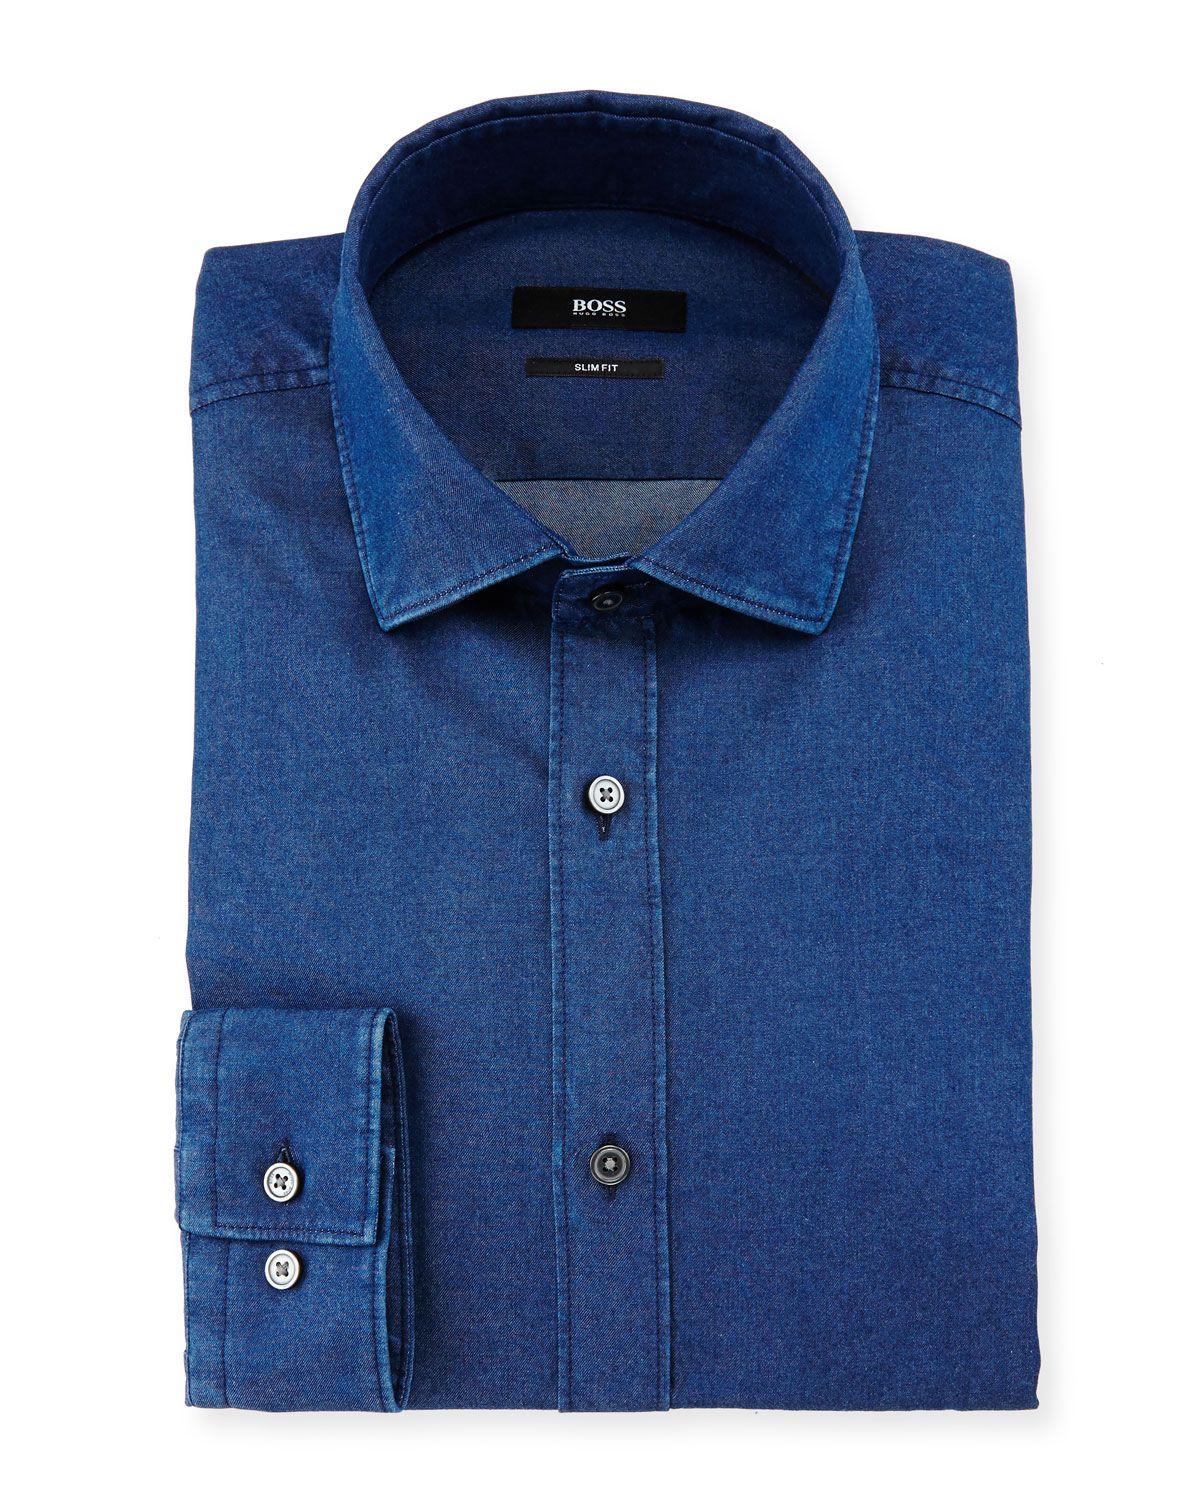 Online Thrift Store Shopping Mall Fitted Denim Dress Slim Fit Mens Shirts Mens Shirt Dress